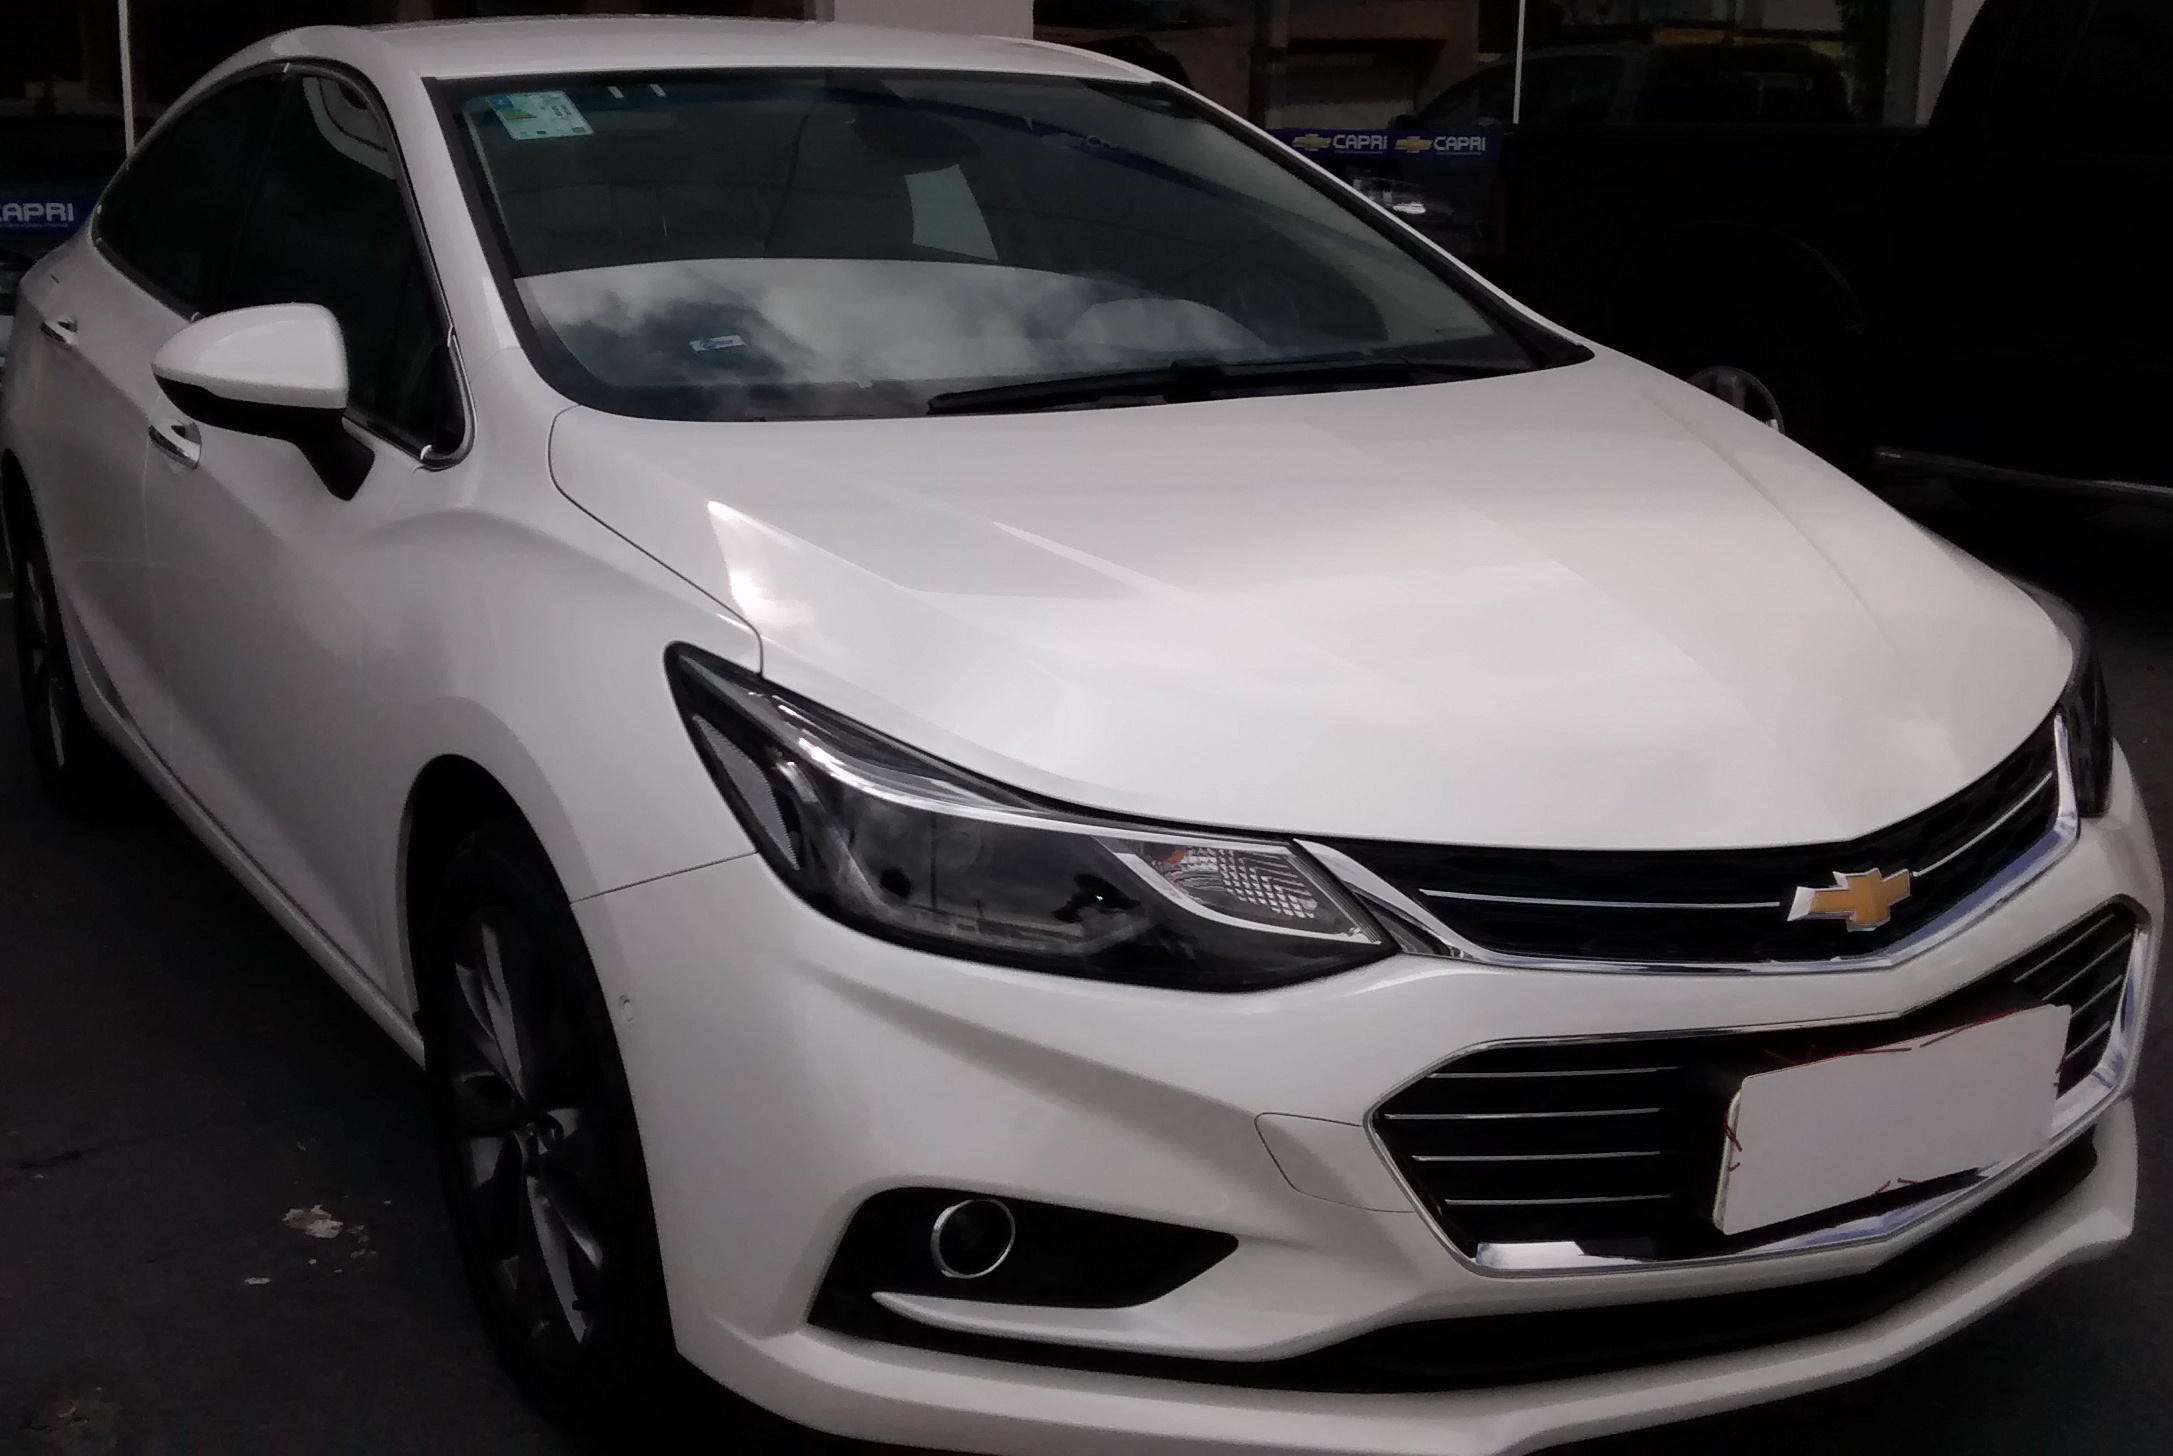 Chevrolet CRUZE TURBO 1.4 2017